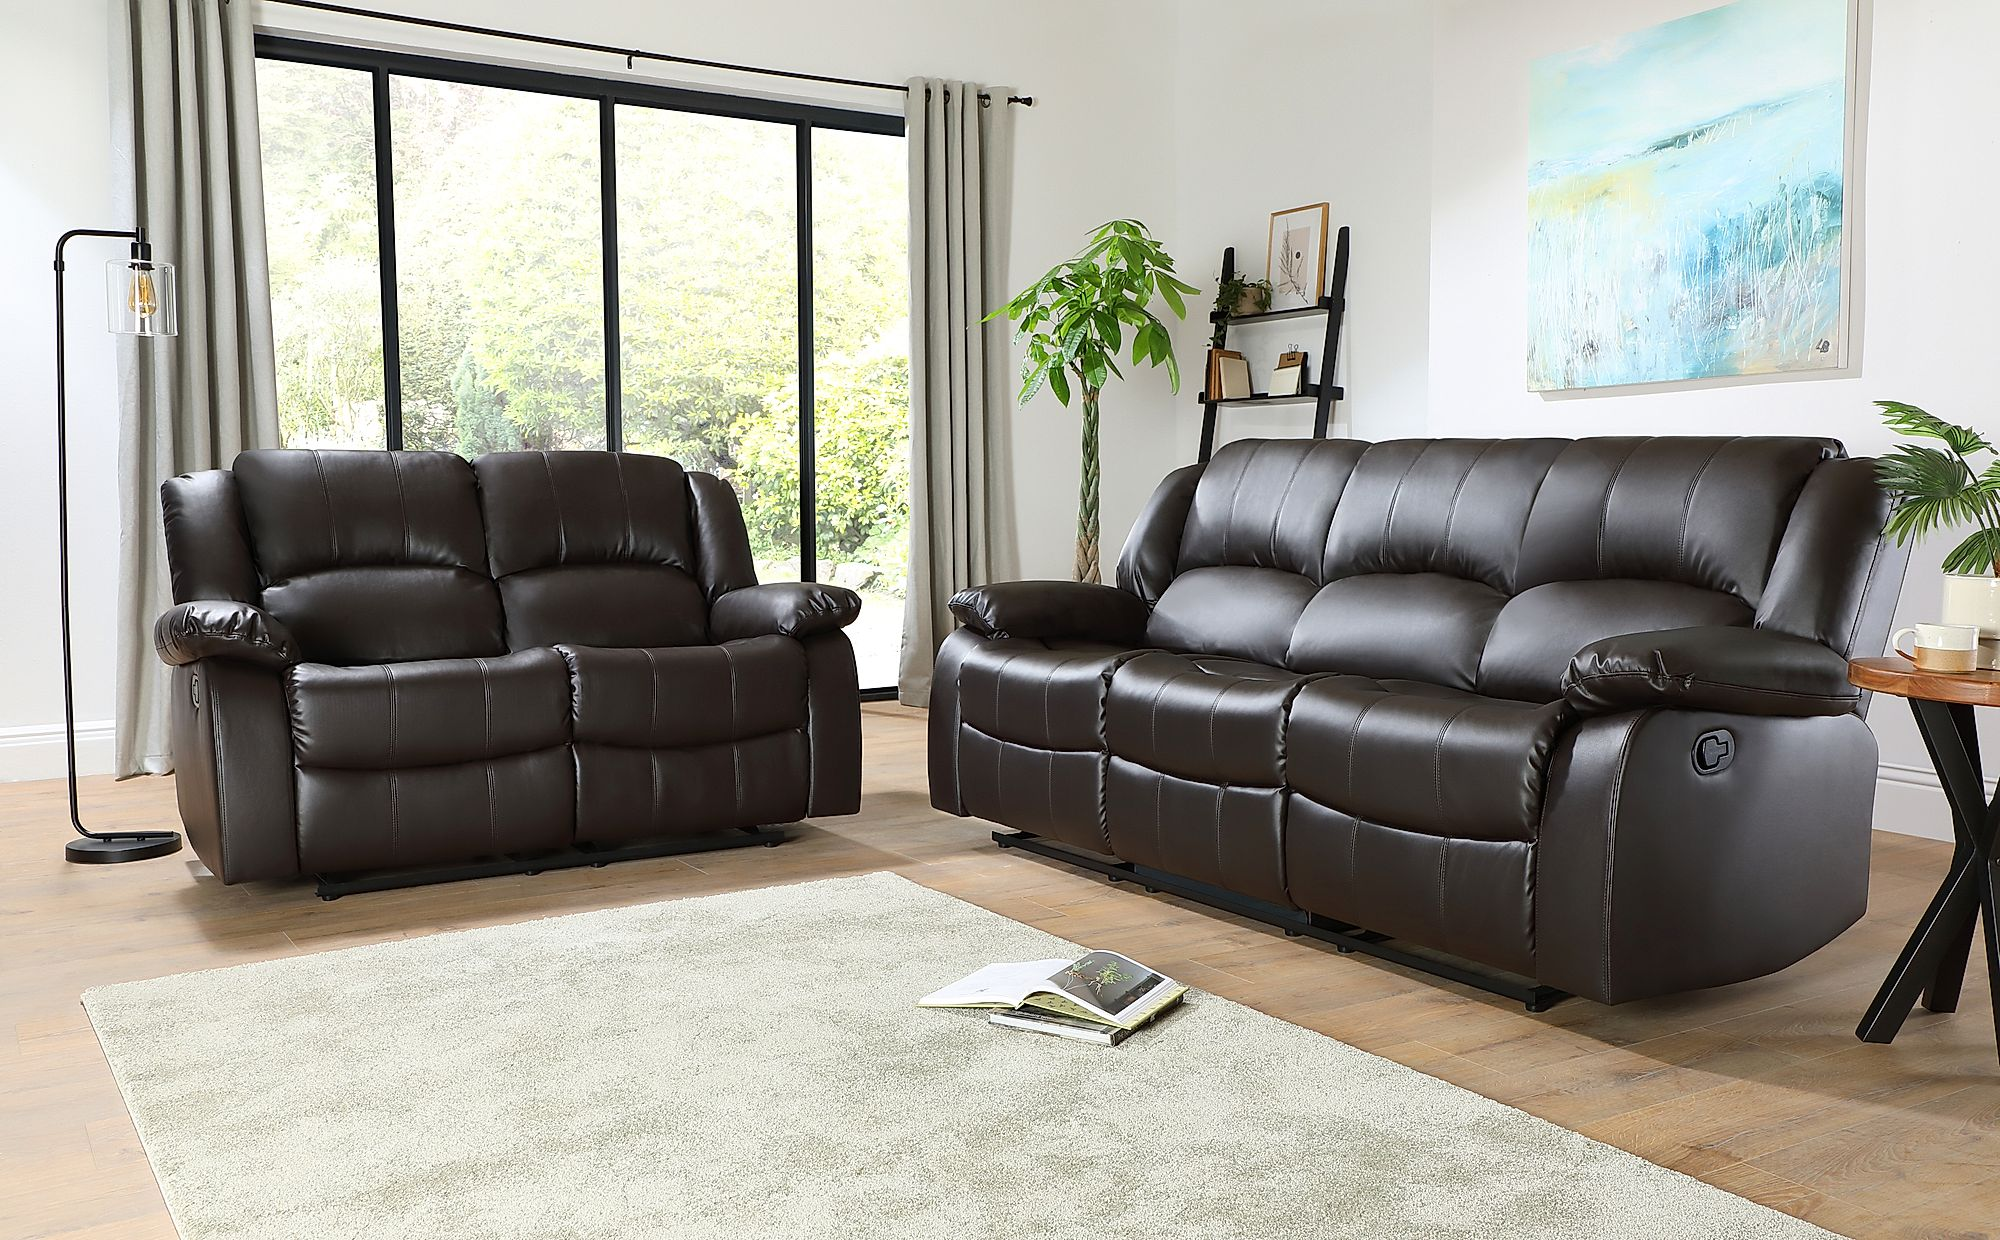 3 Seater Recliner Leather Sofa